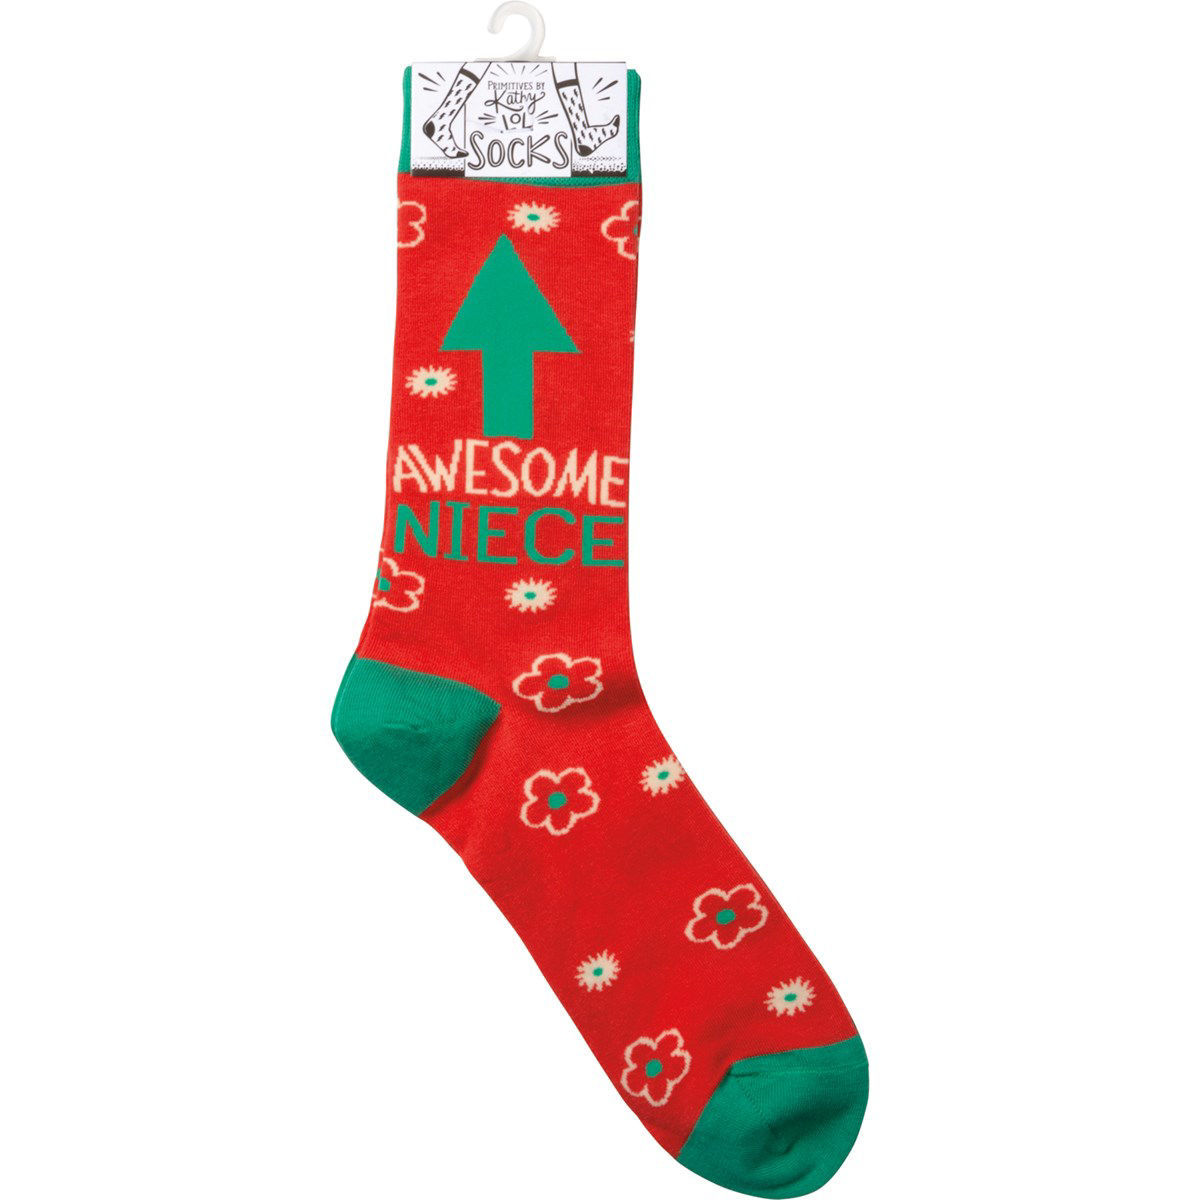 Awesome Niece Socks by Primitives by Kathy